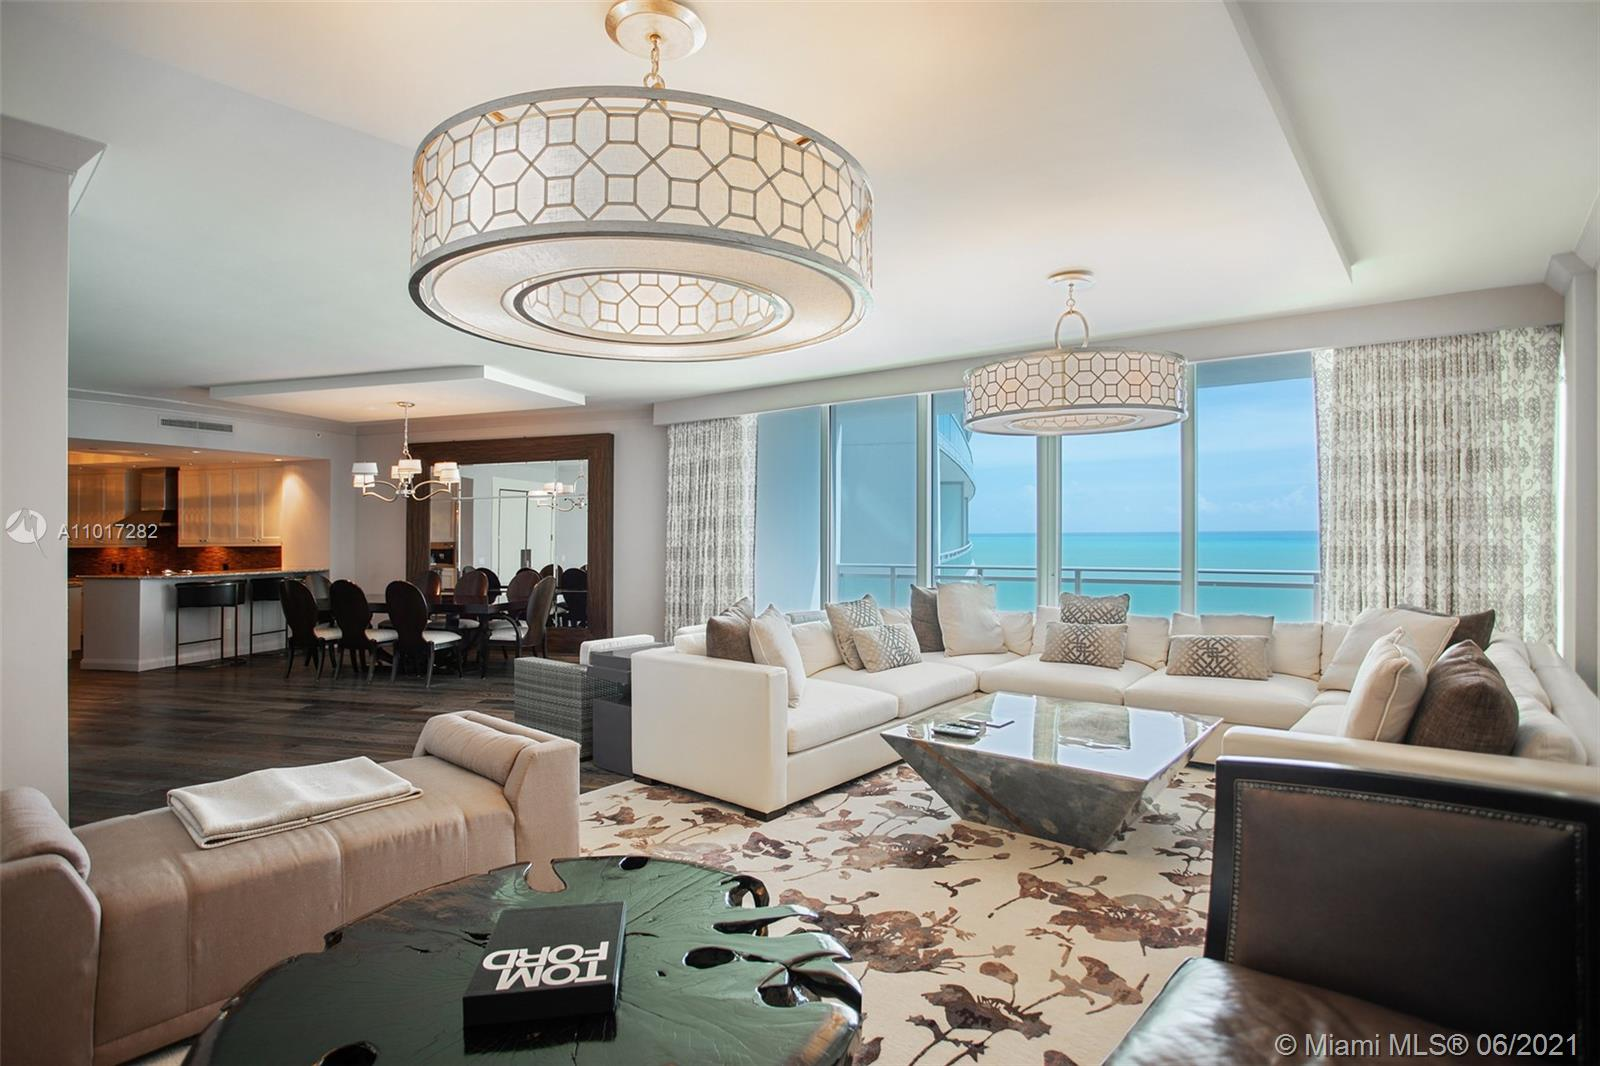 Beautiful 3 bedroom 3.5  bath ocean front residence, several blocks away from Bal Harbour Shops. Ritz Carlton Amenities at your service - Spa, beach & pool services, restaurant, room service, 24 hr concierge. Tenant occupied until August 2021. Virtual showings only during this time.